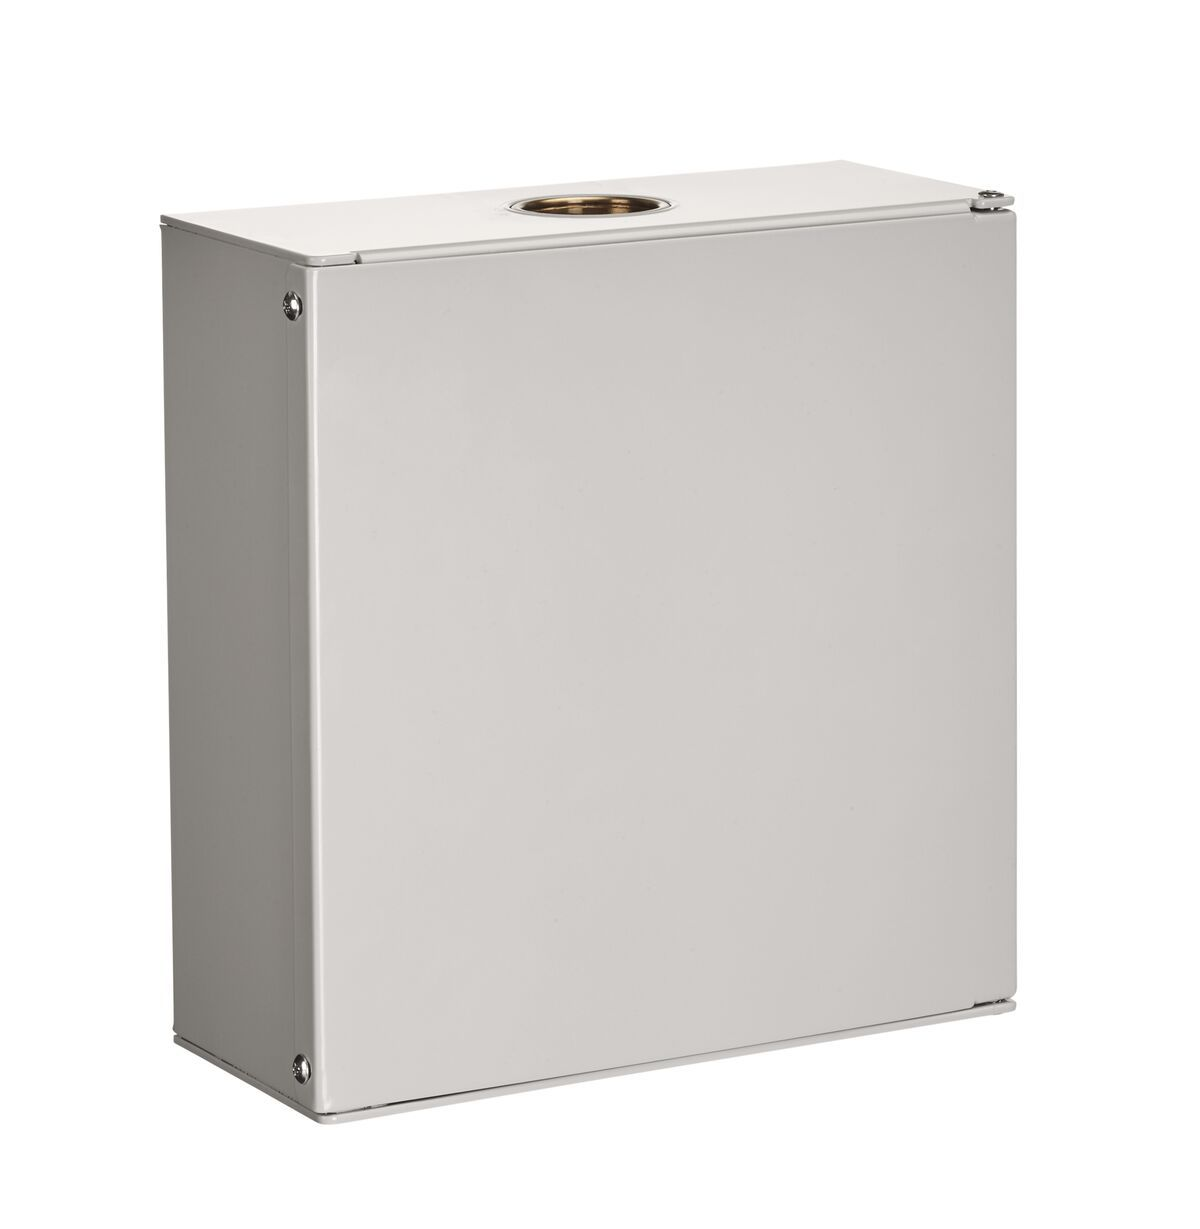 Vogel's PMA 7901 Medical wall box - Product